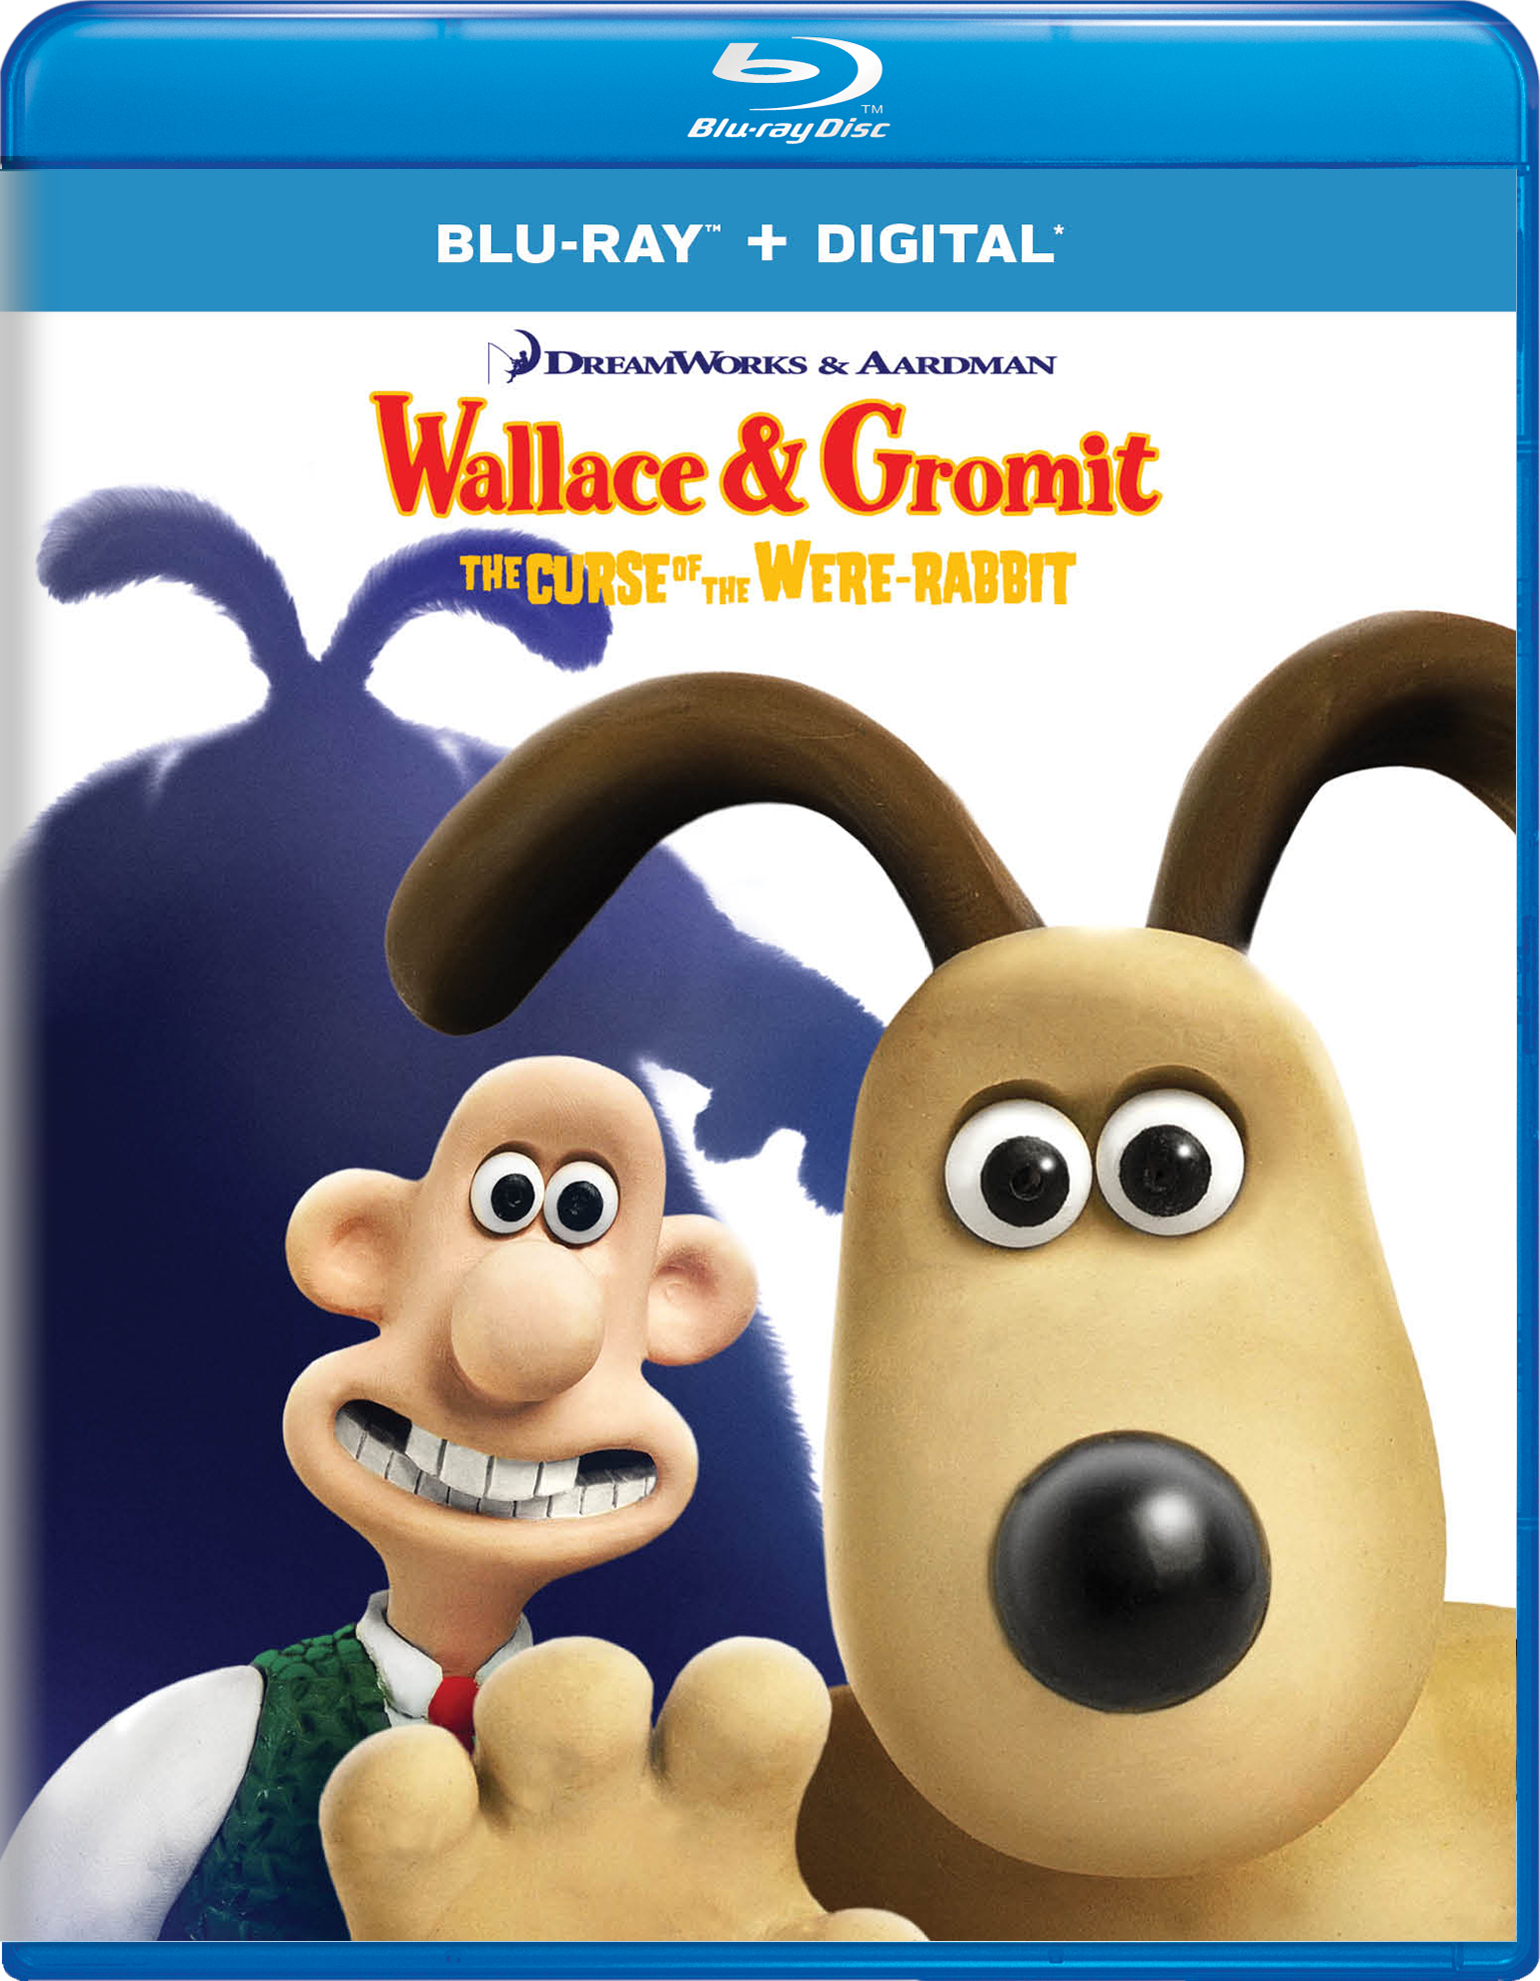 Wallace & Gromit: The Curse of the Were-Rabbit (Blu-ray)(Region Free)(Pre-order / Jun 4)